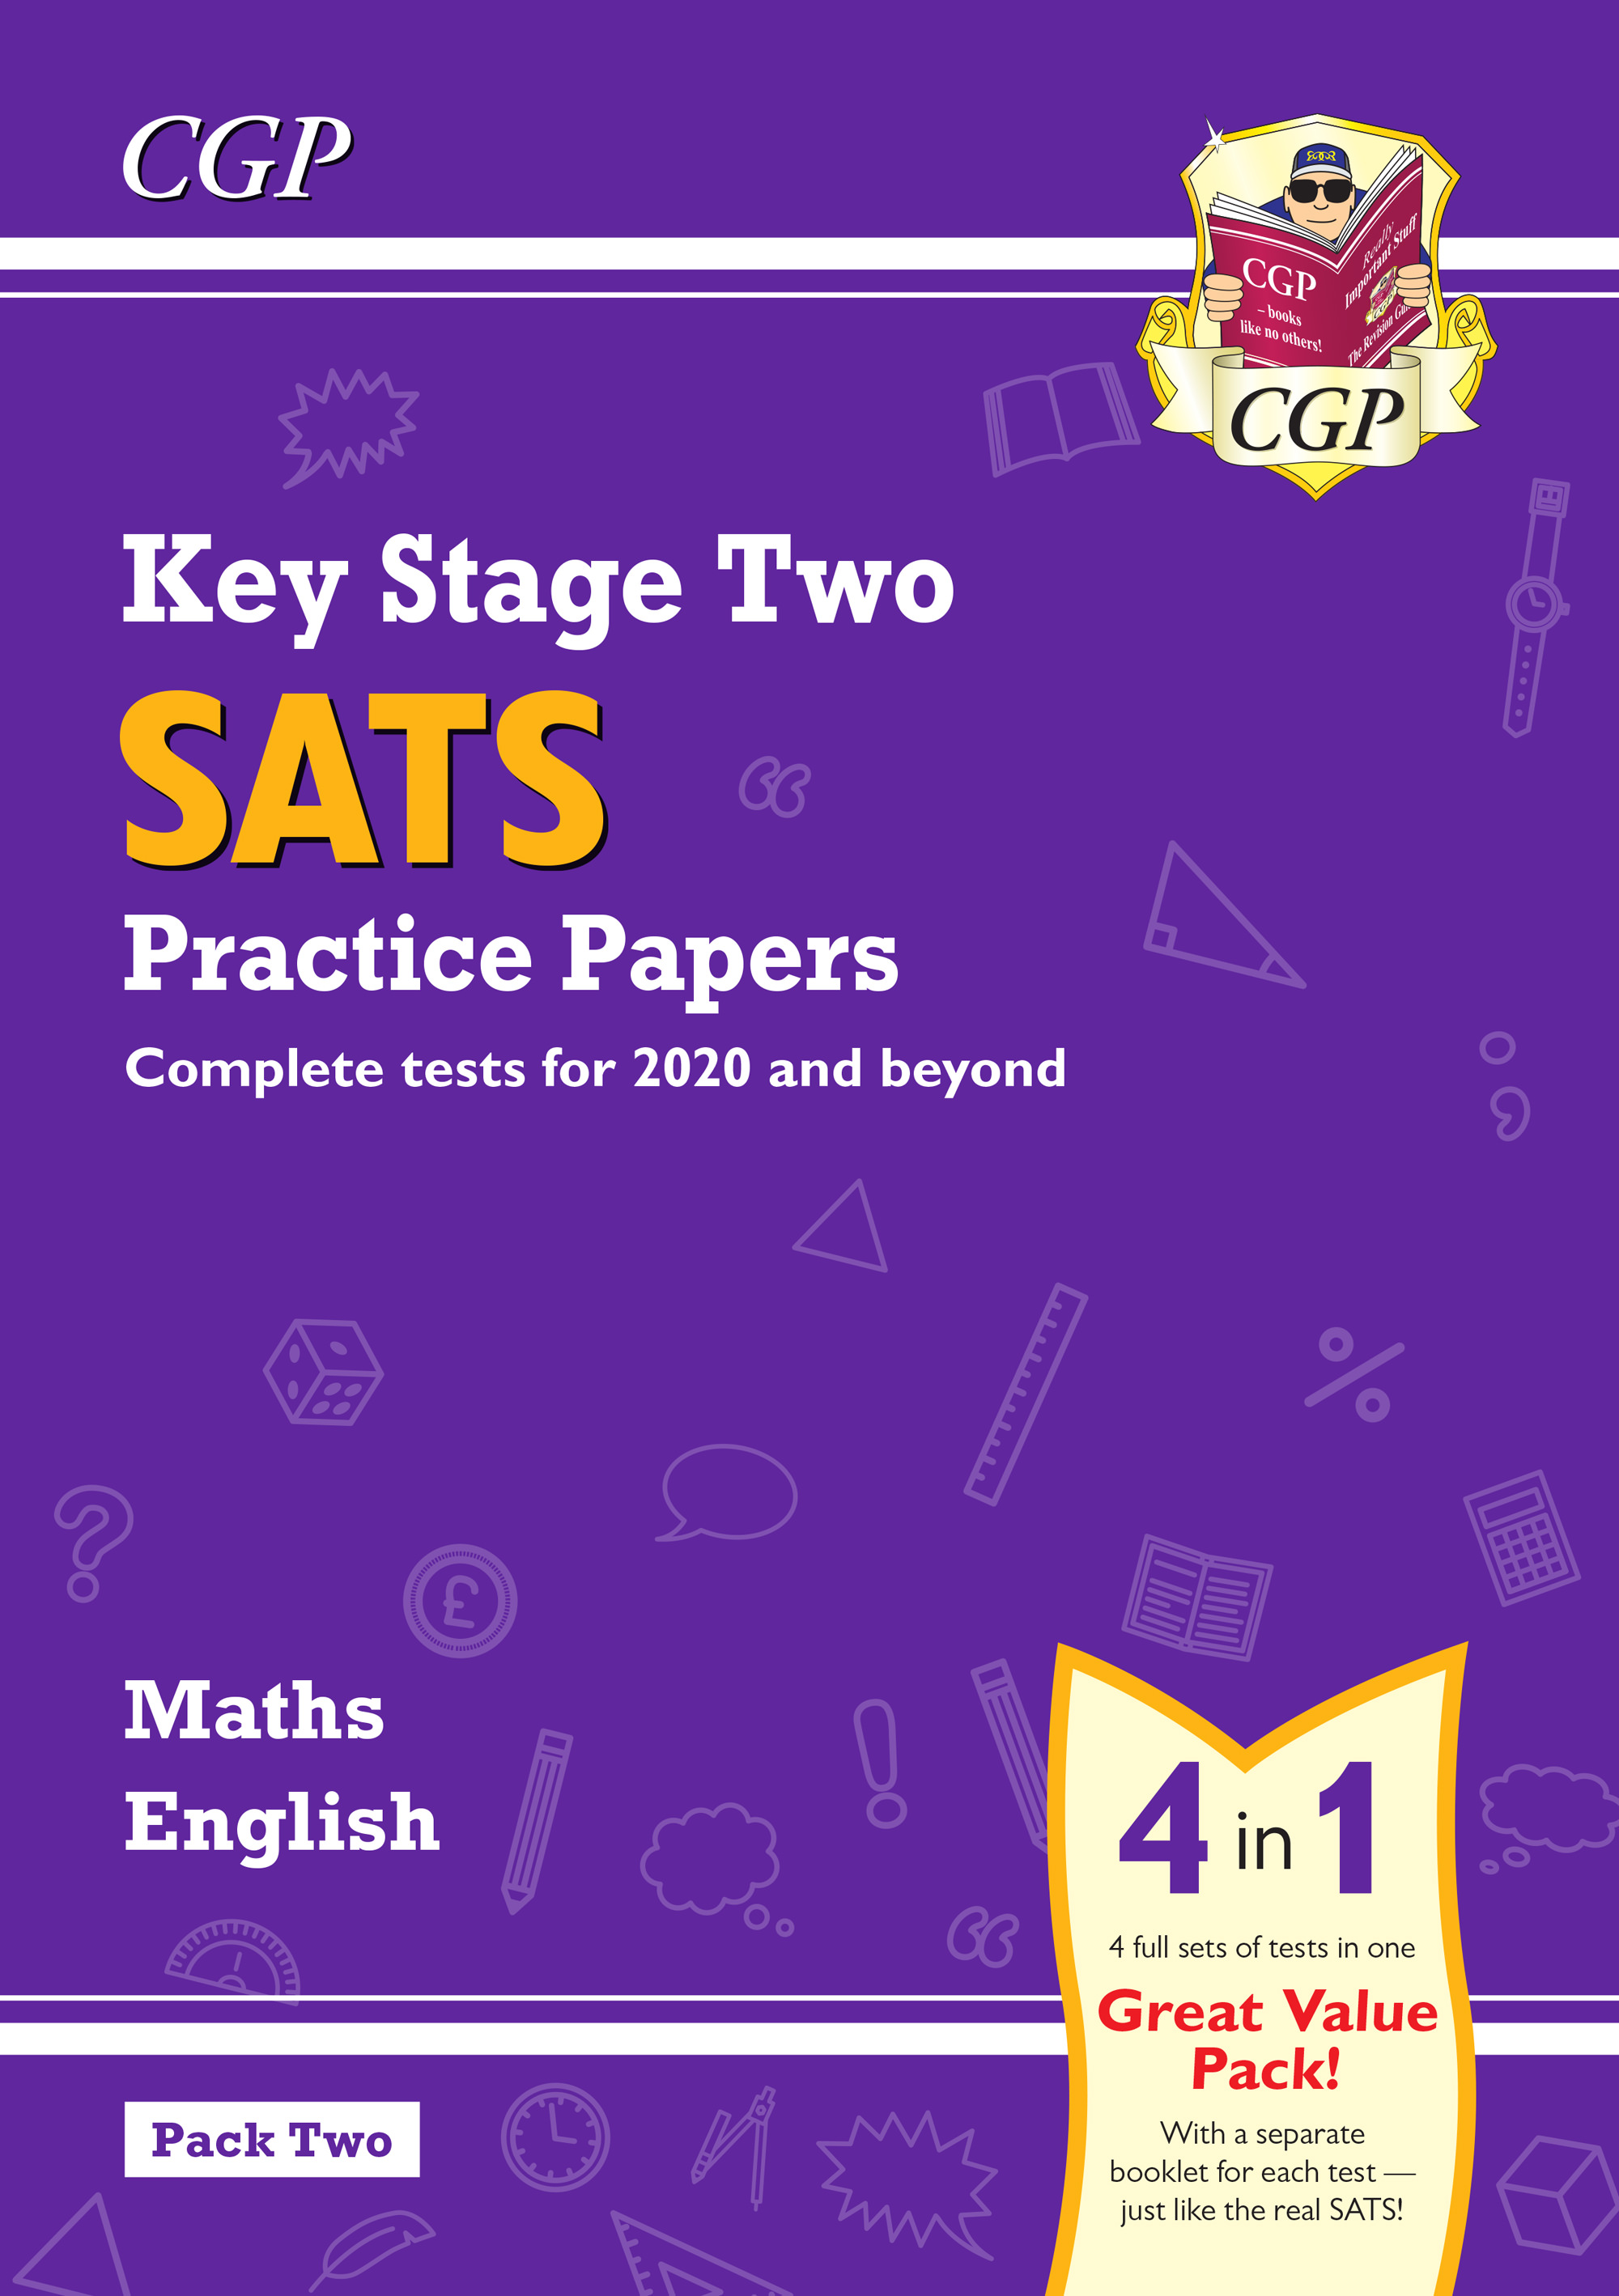 MEB223 - New KS2 Maths and English SATS Practice Papers Pack (for the 2019 tests) - Pack 2